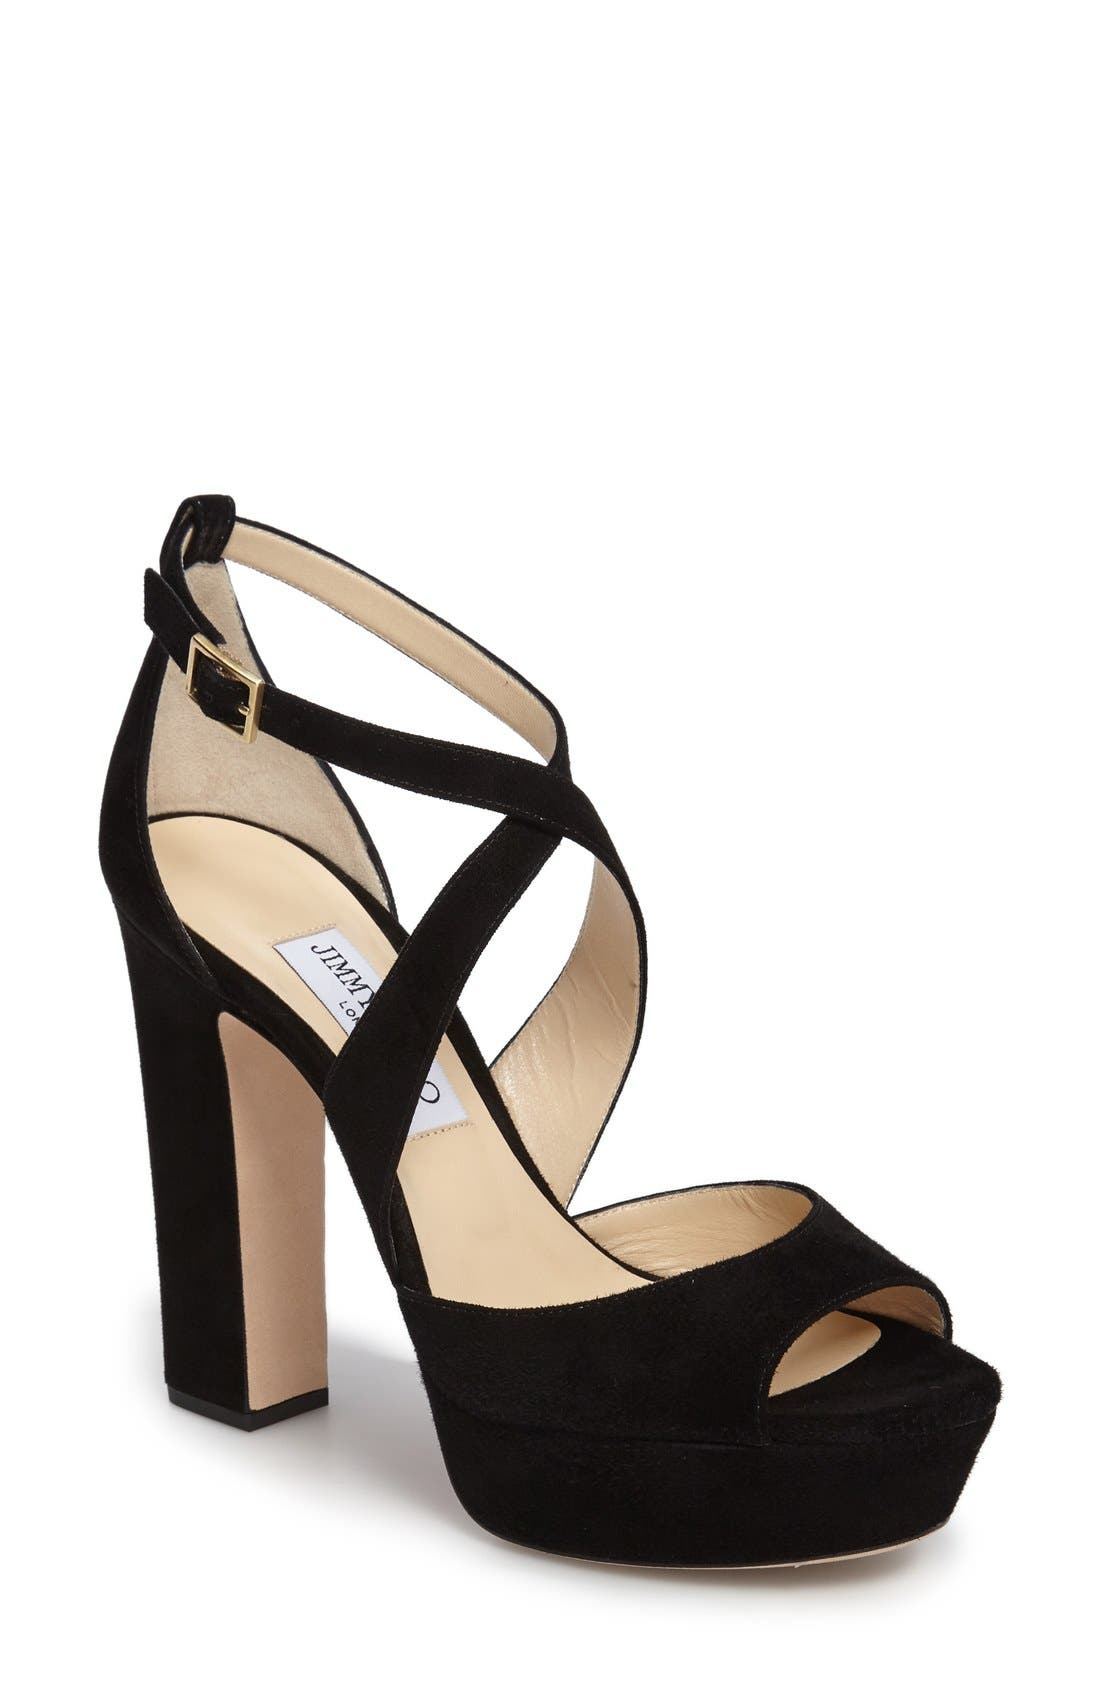 Main Image - Jimmy Choo April Platform Sandal (Women)